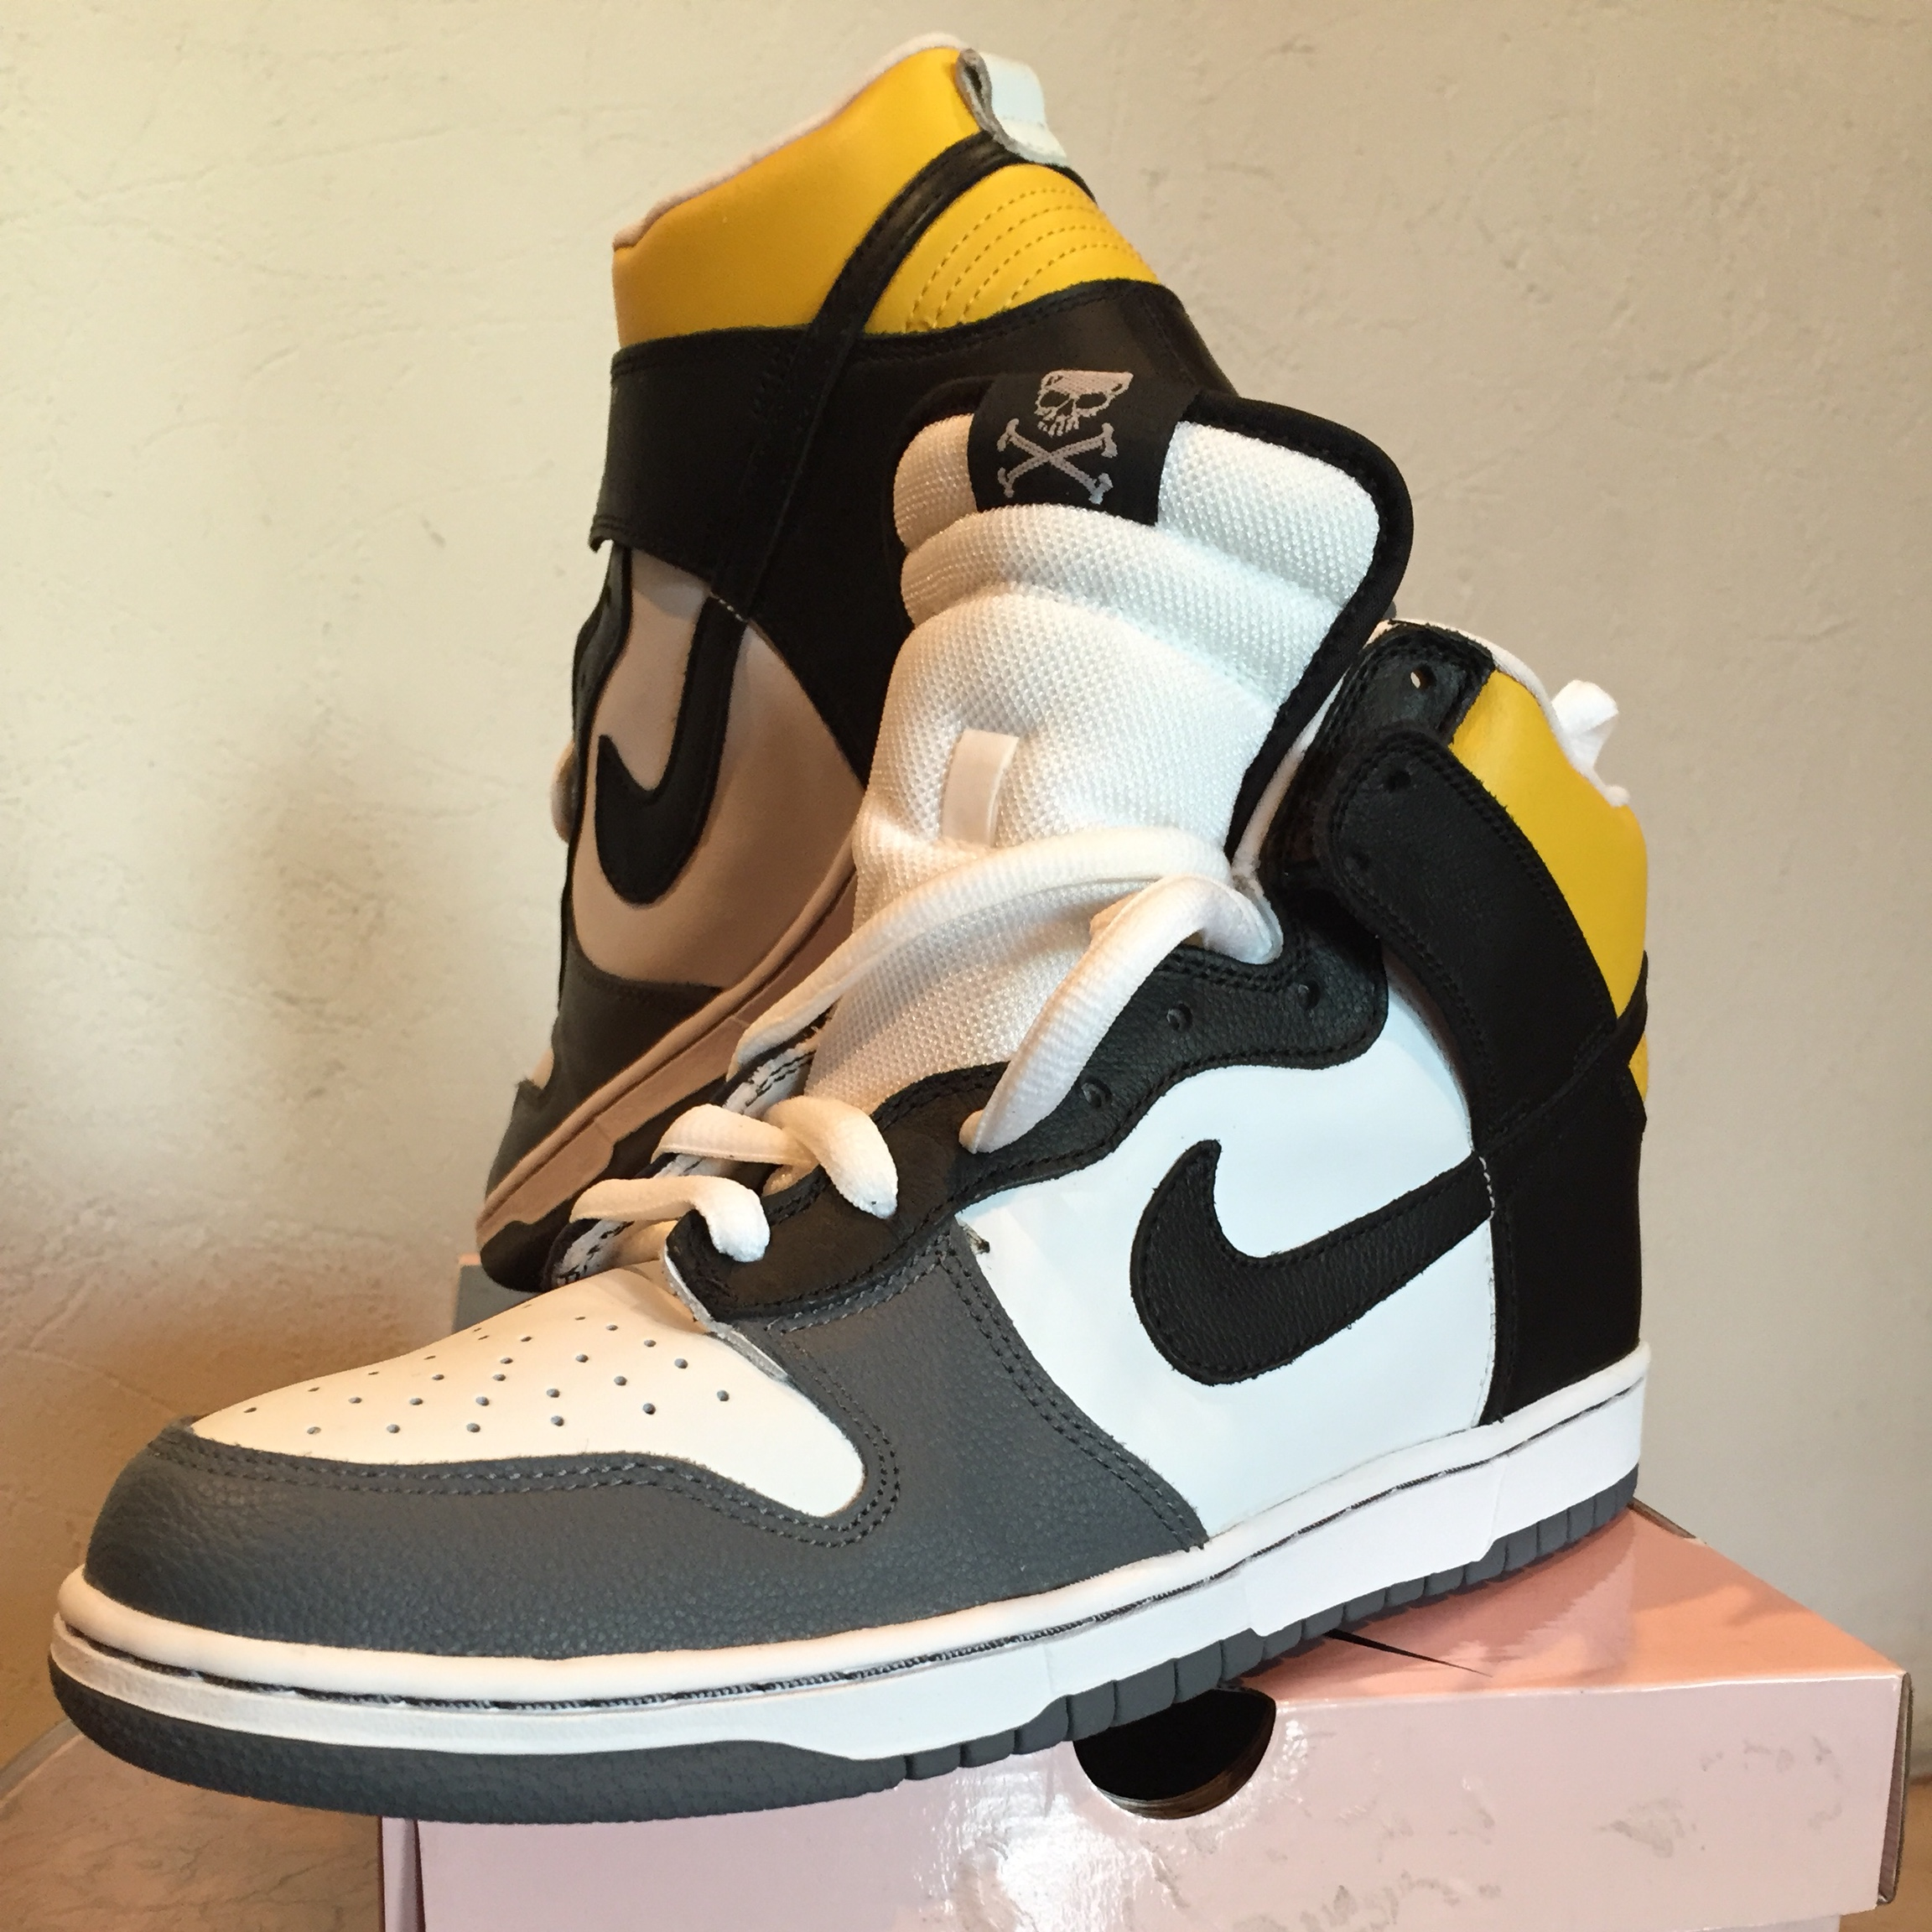 sports shoes a3514 51b05 🐥DS Nike Dunk High Shimizu size 10.5 🐥Brand new 🐥All ...